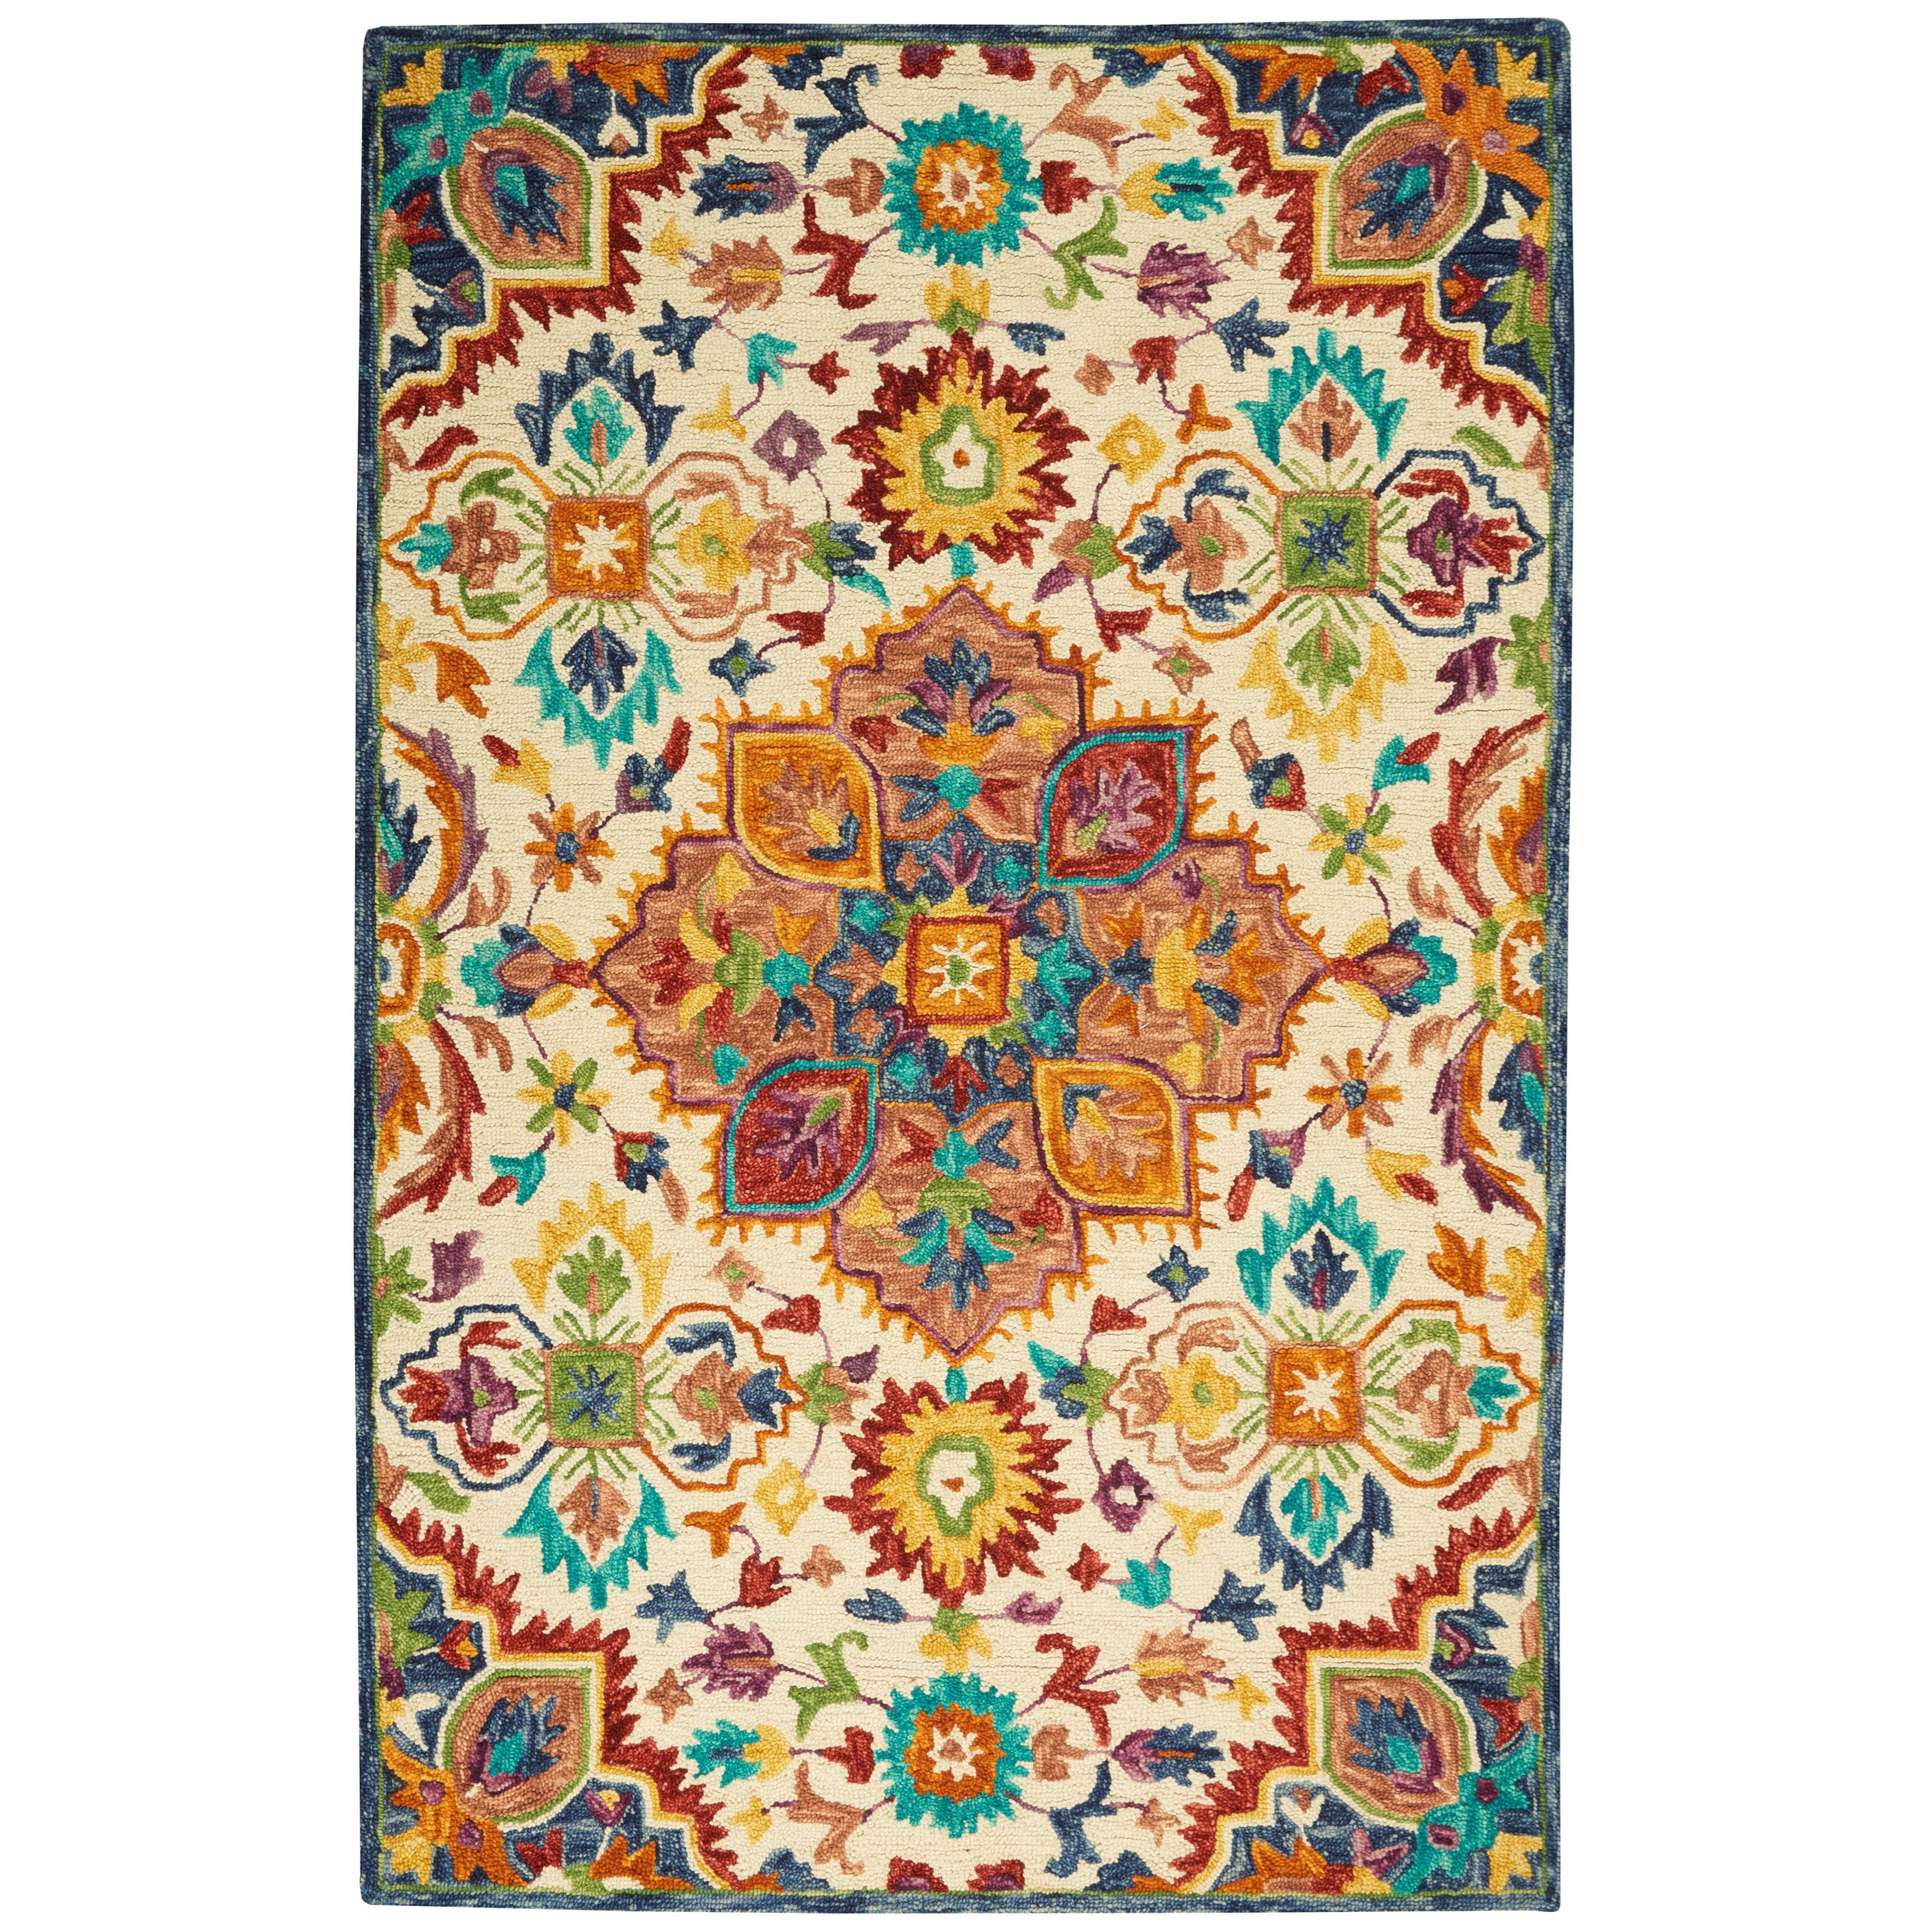 Bahari 2020 5' x 7' Rug by Nourison at Sprintz Furniture